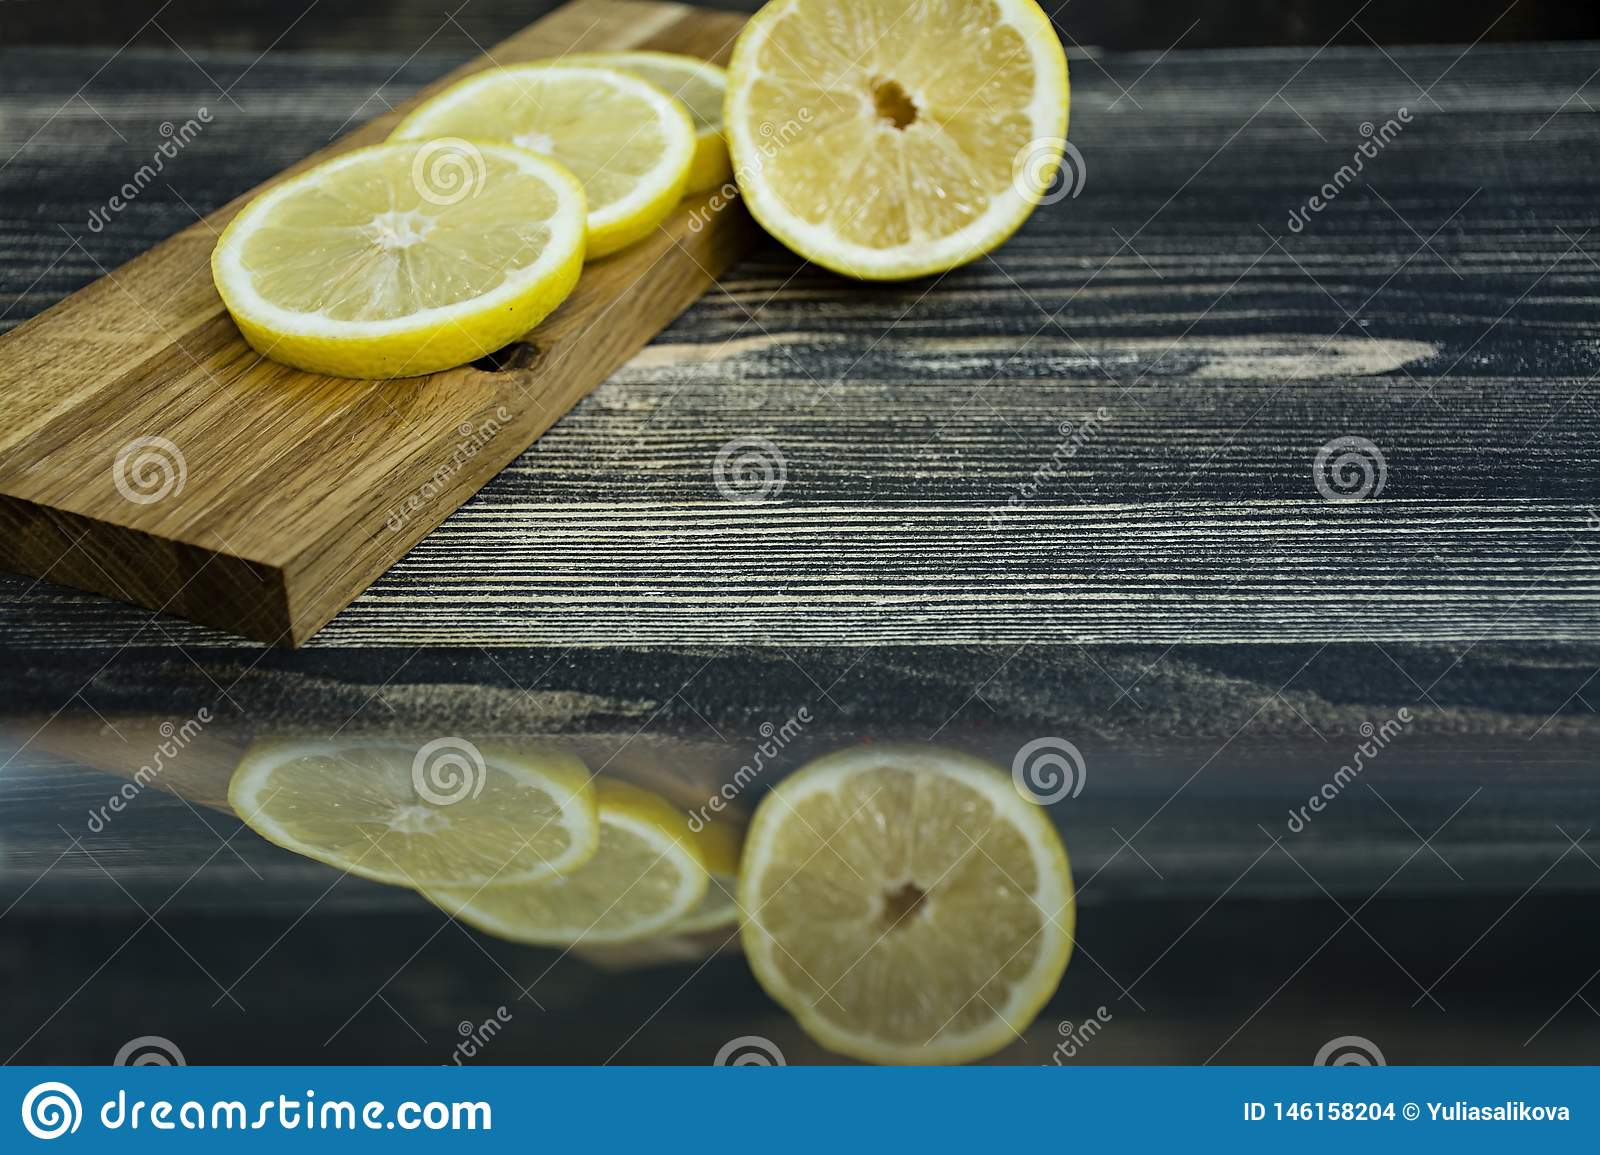 Lemon slices on a wooden stand